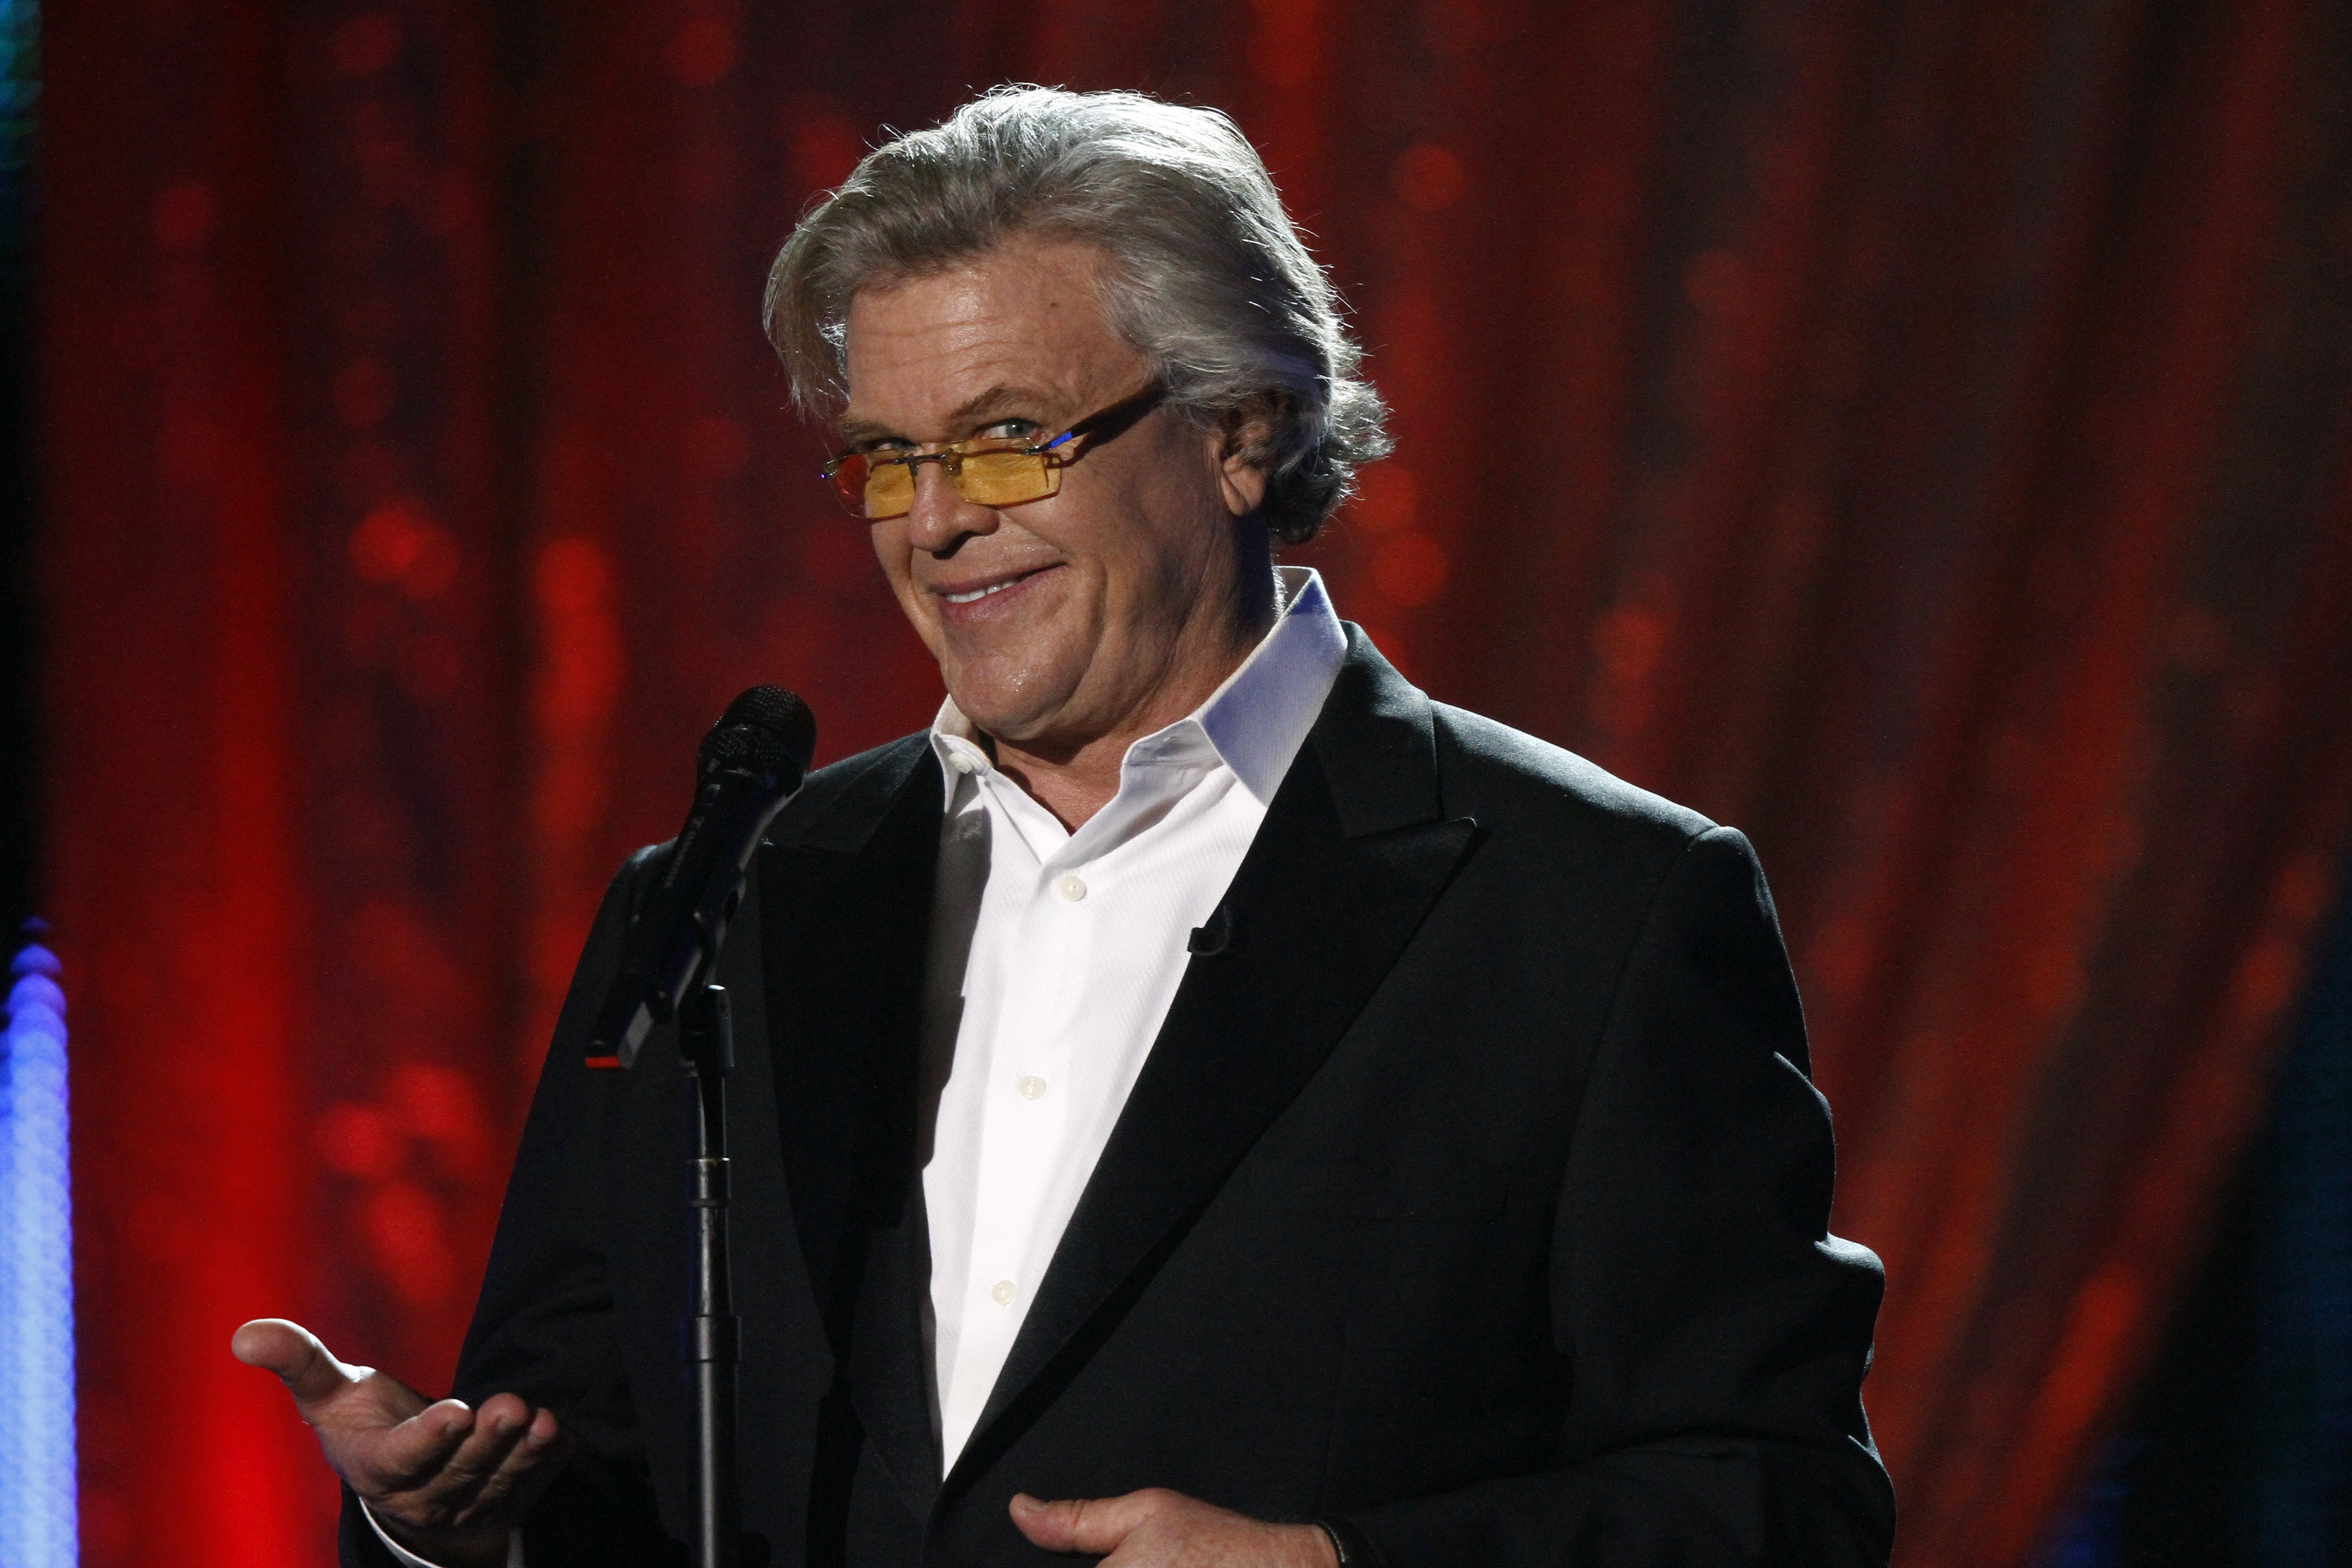 Ron White brings blue collar comedy to Warner Theatre